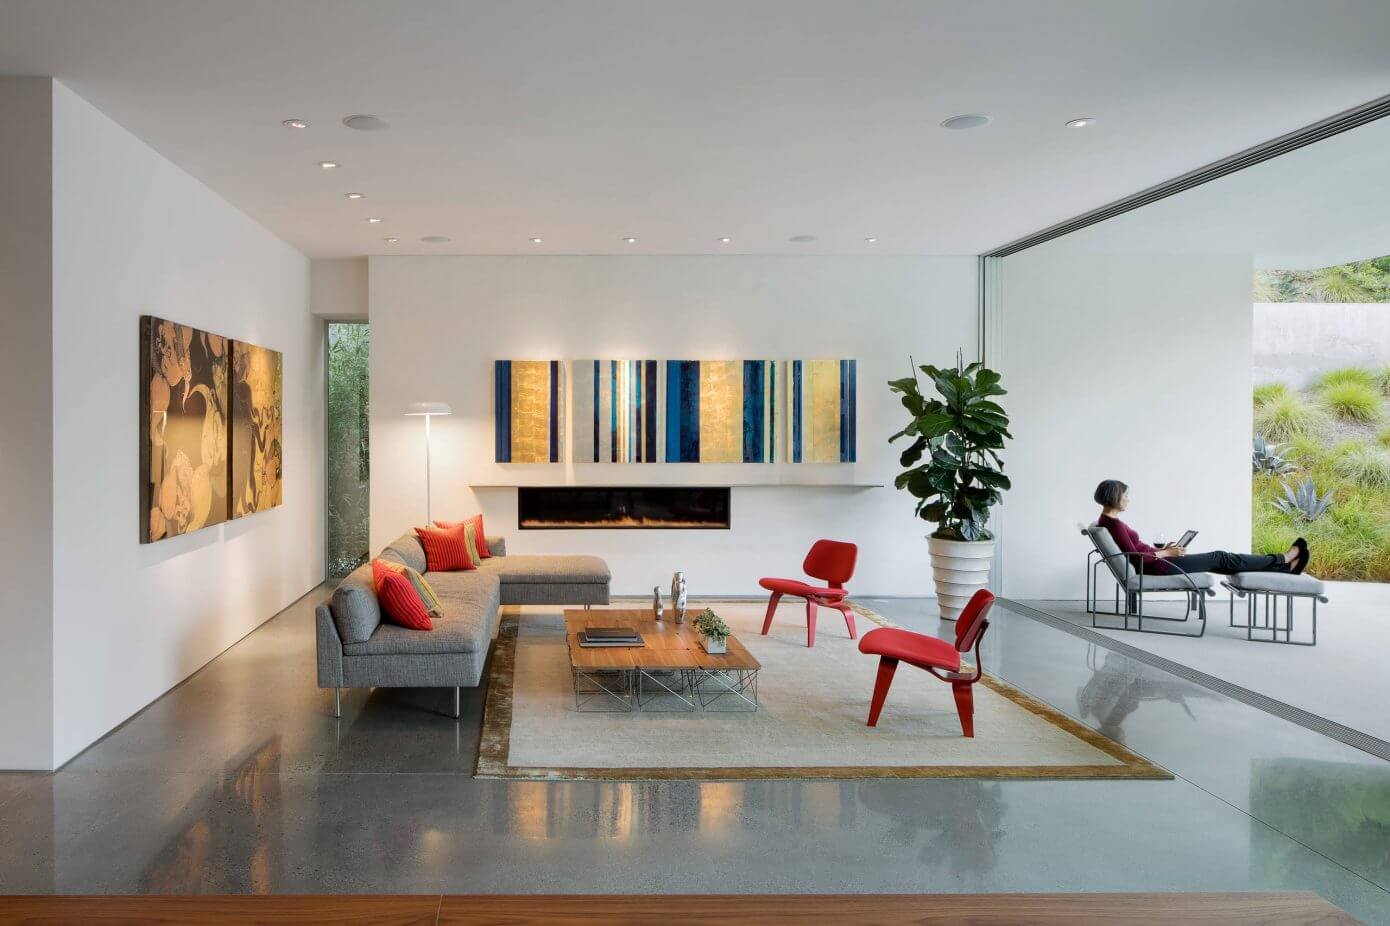 Coldwater canyon residence by ehrlich yanai rhee chaney - Limposante residence contemporaine de ehrlich architects ...